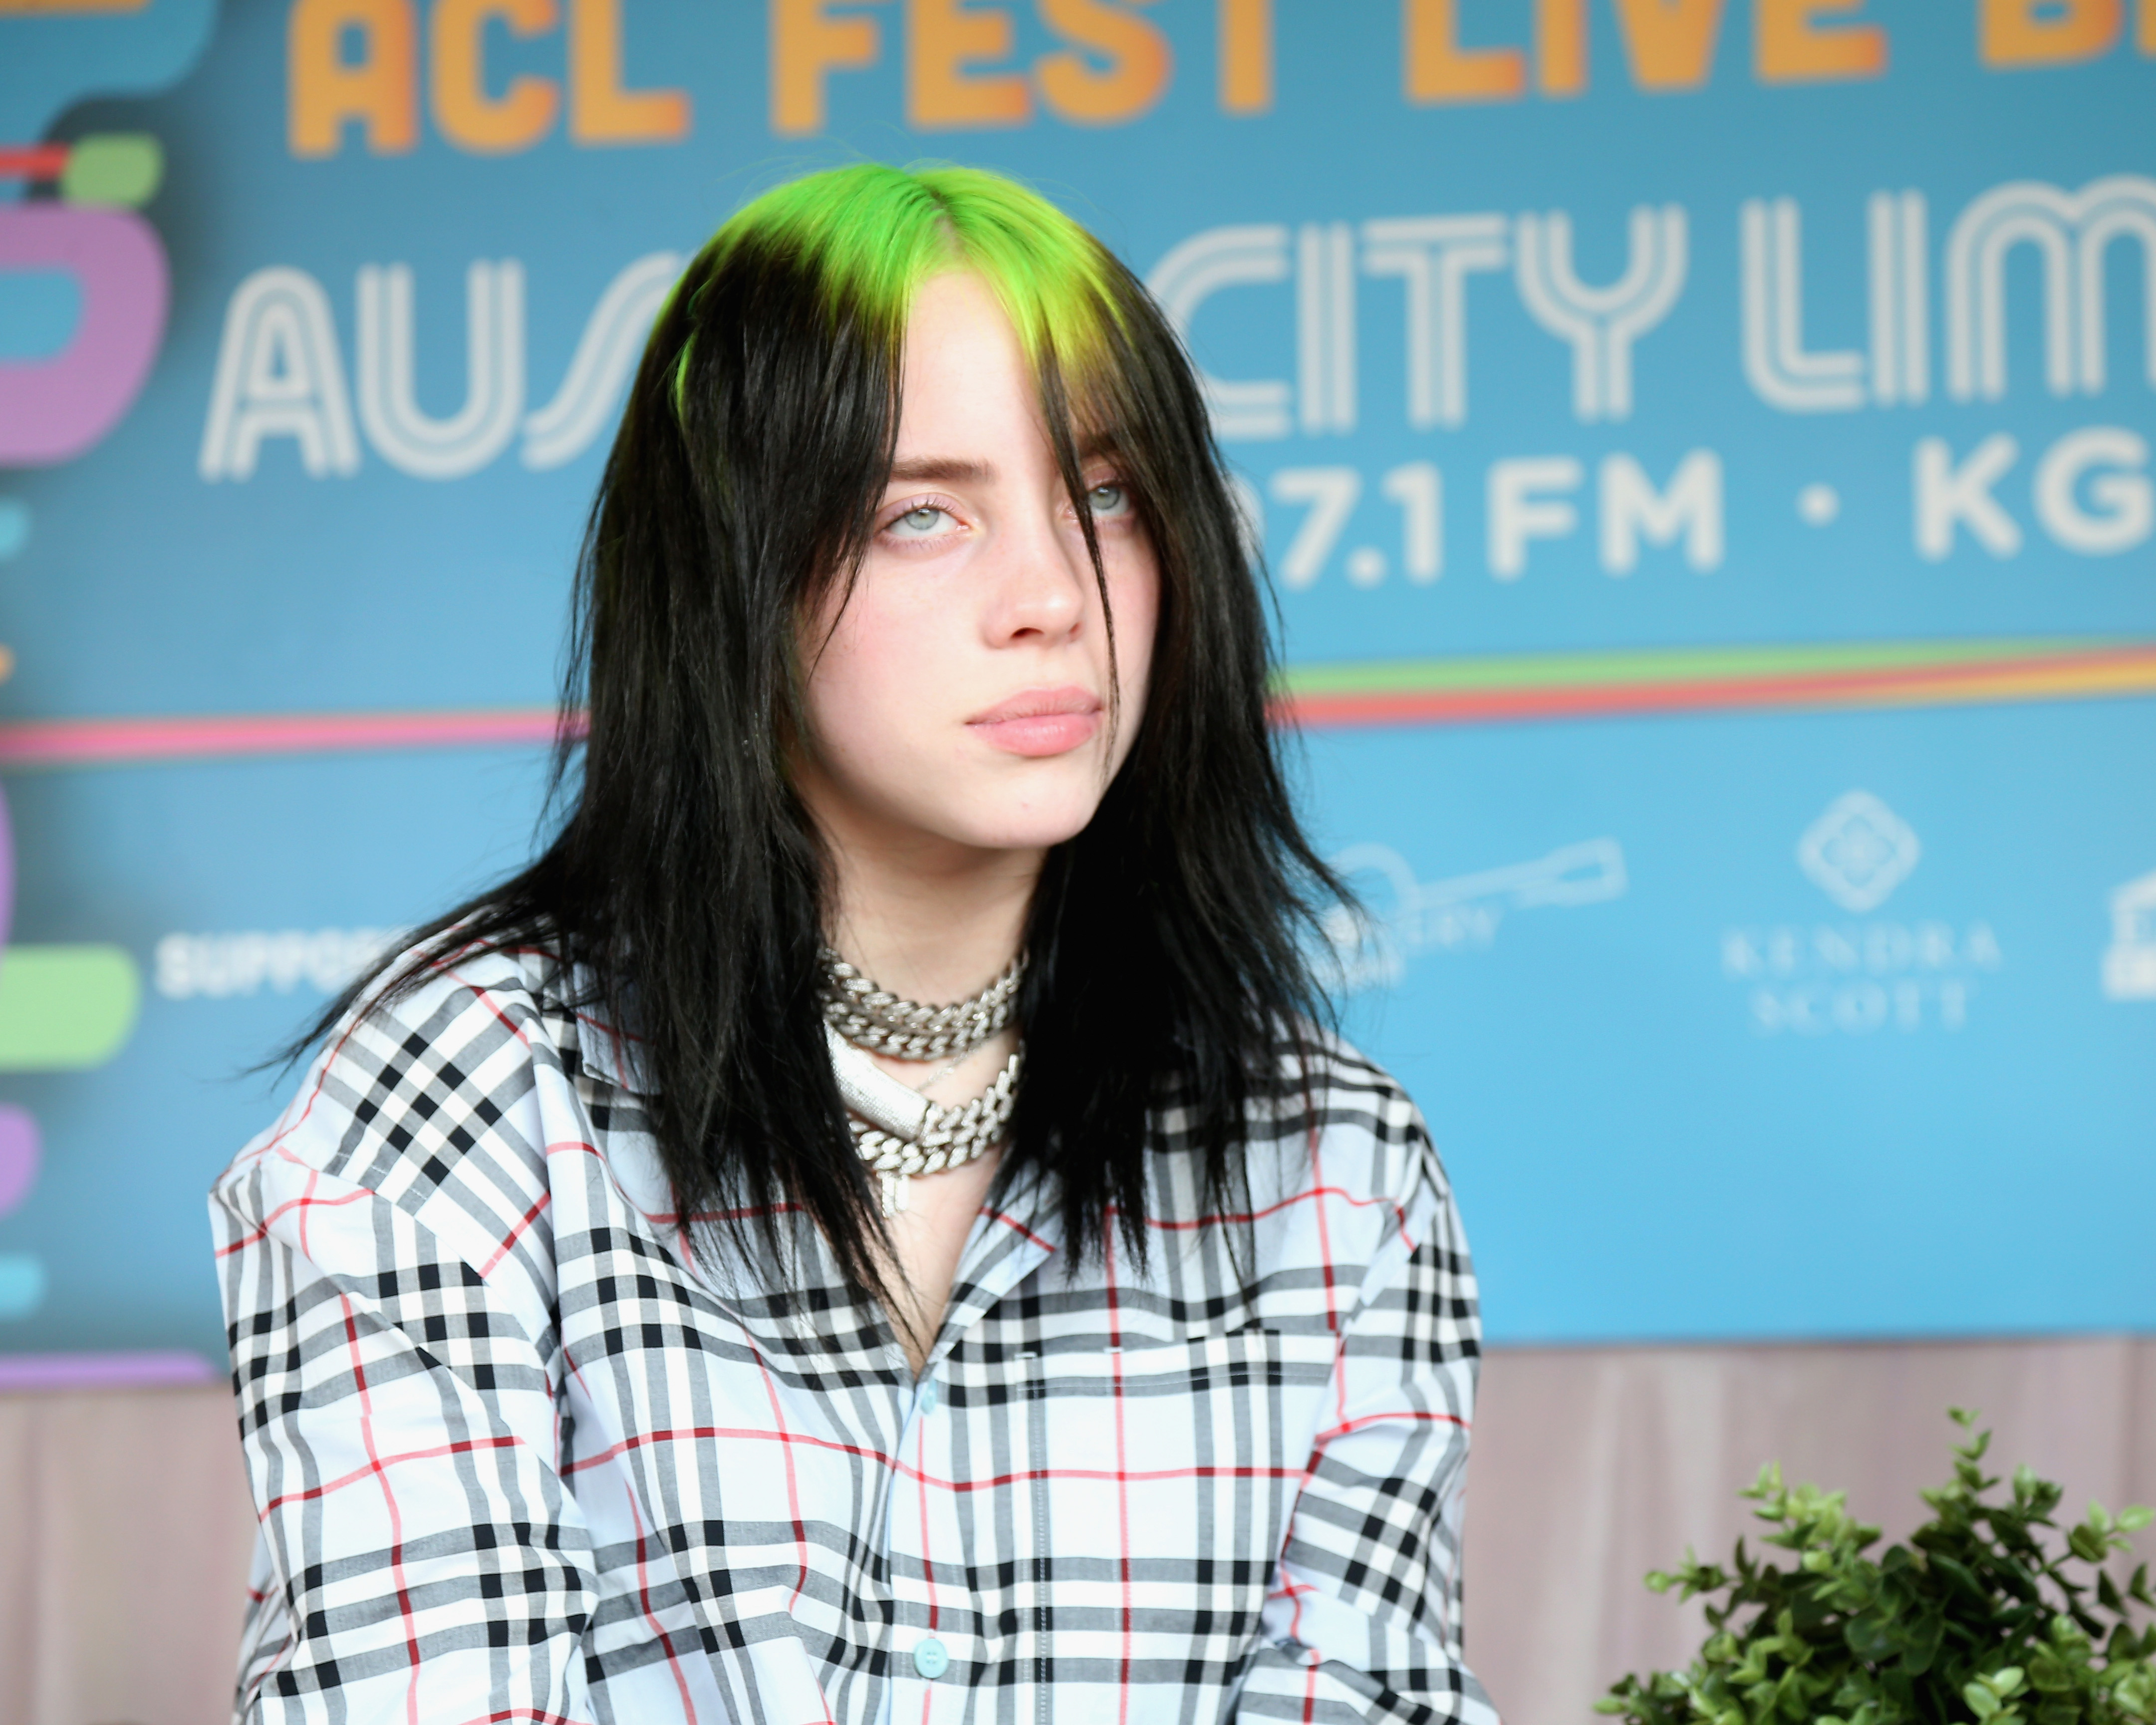 AUSTIN, TEXAS - OCTOBER 05:  Billie Eilish is interviewed back stage during weekend one of the 2019 ACL Fest at Zilker Park on October 5, 2019 in Austin, Texas.  (Photo by Gary Miller/Getty Images)